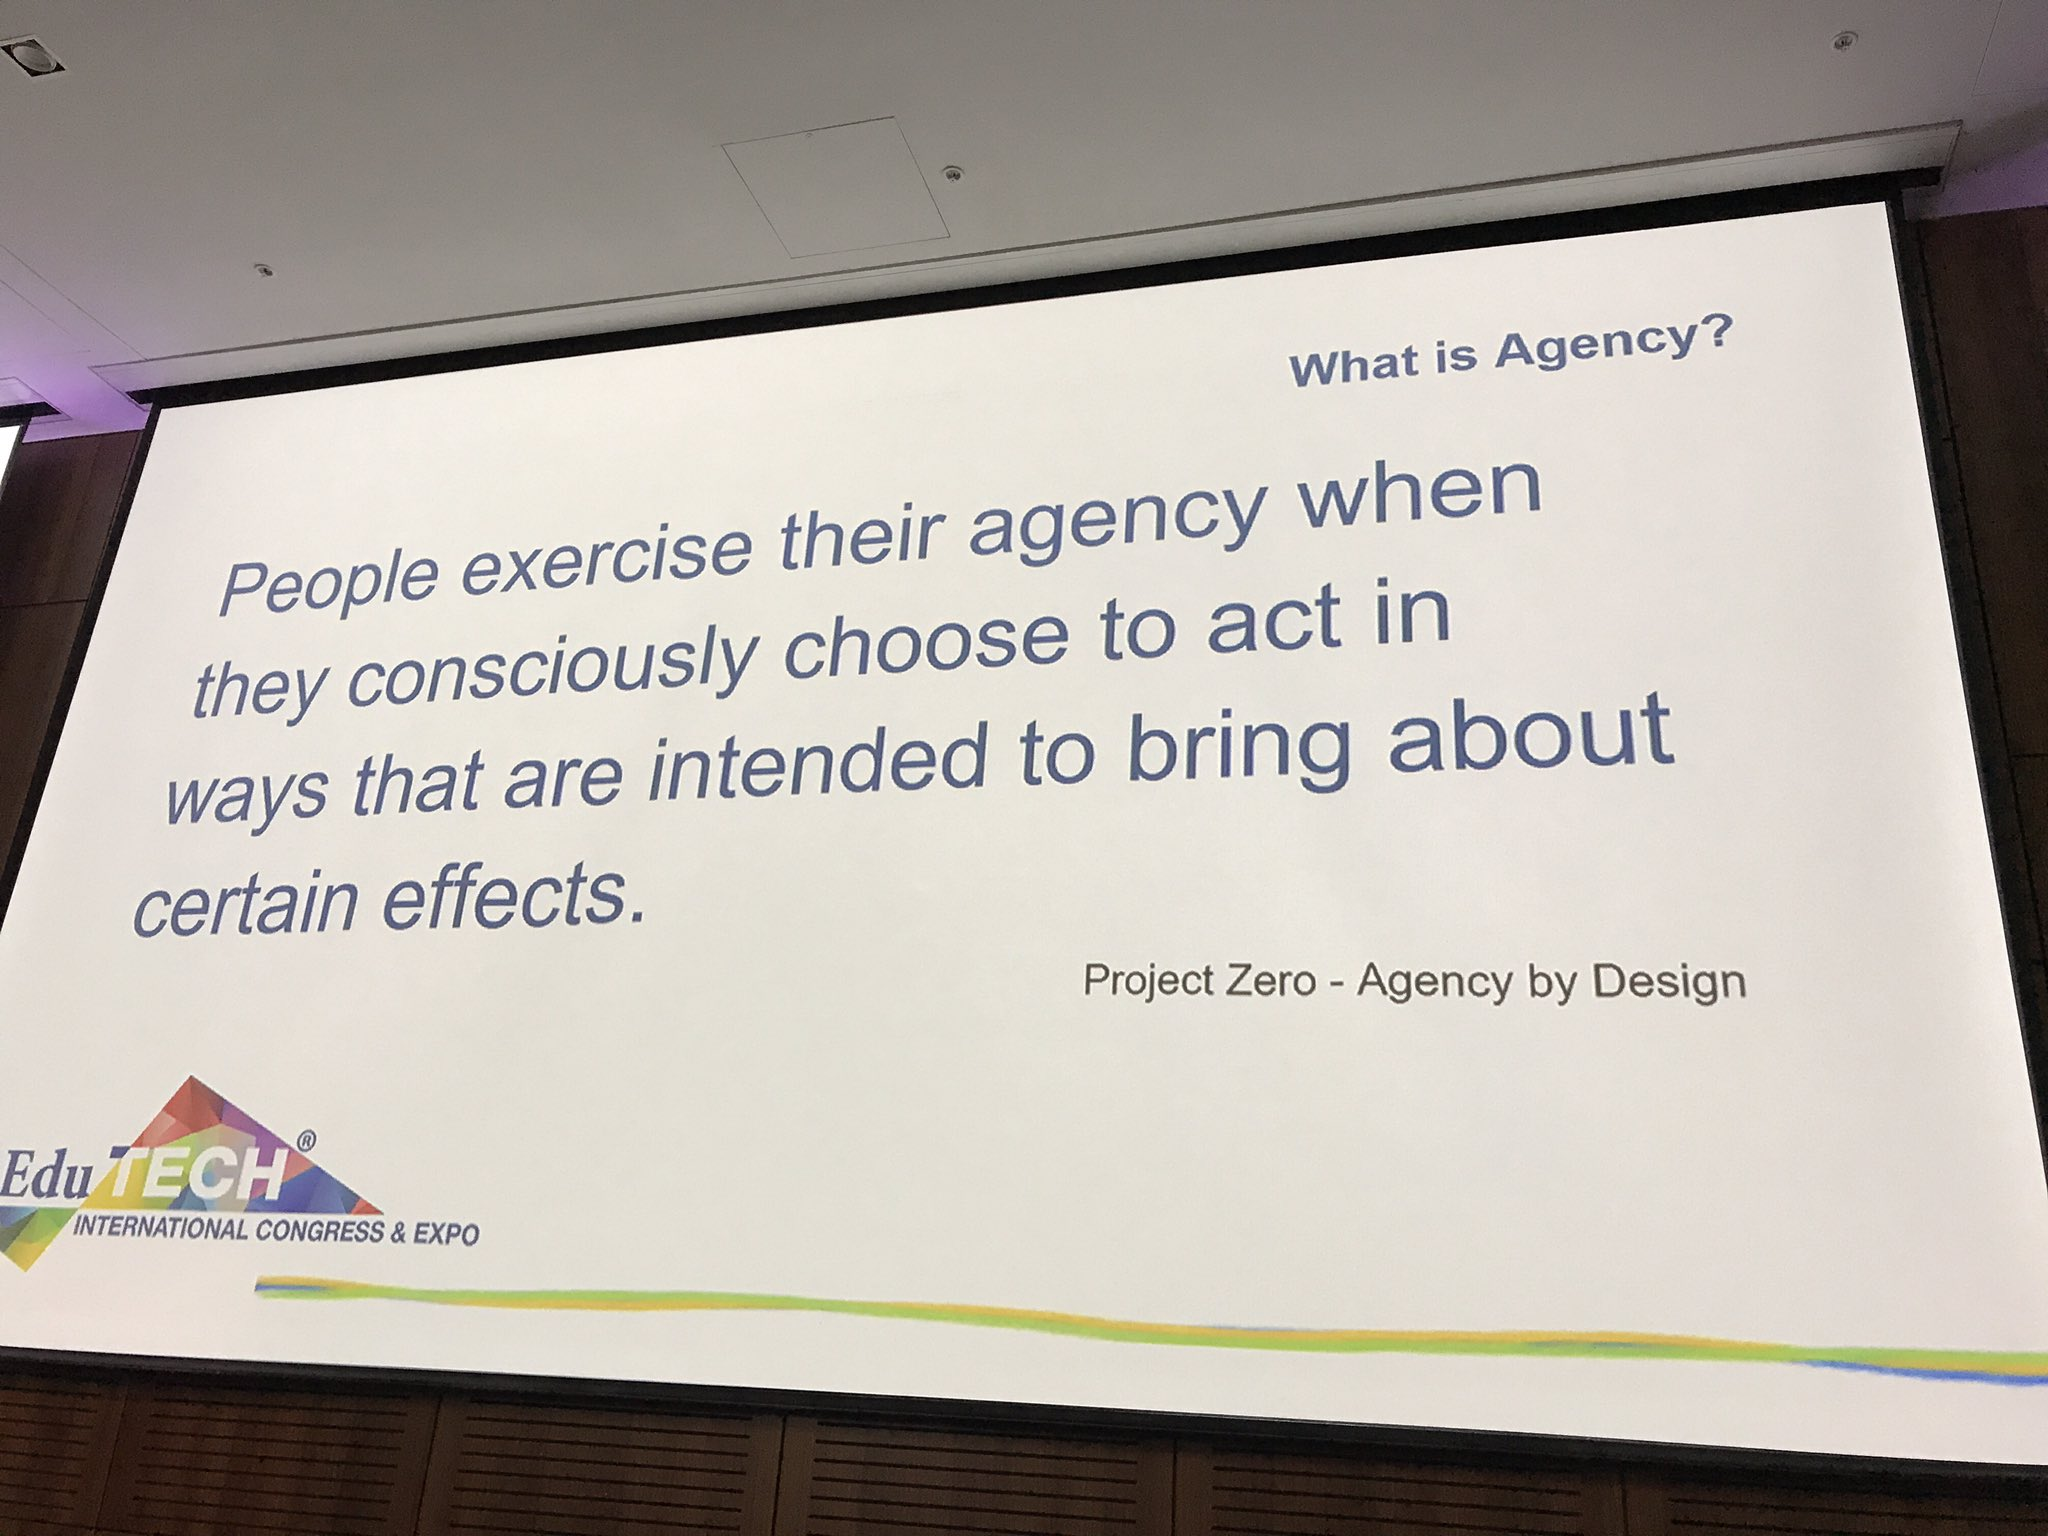 Think about how to provide students with agency #EduTECHAU https://t.co/Ktn1cFE6NG